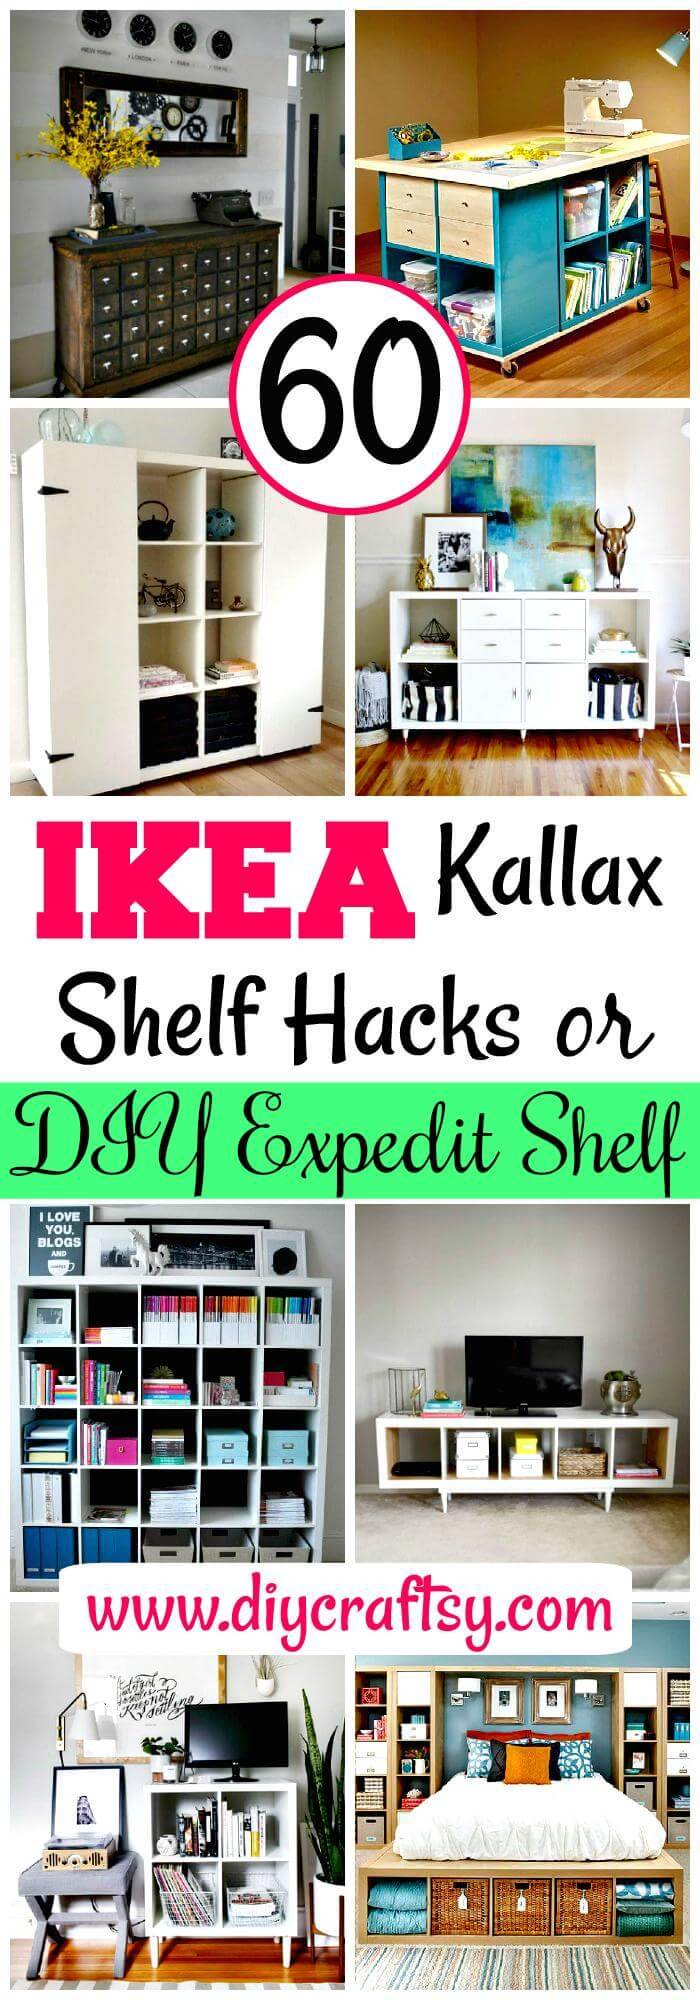 IKEA Kallax Shelf Hacks